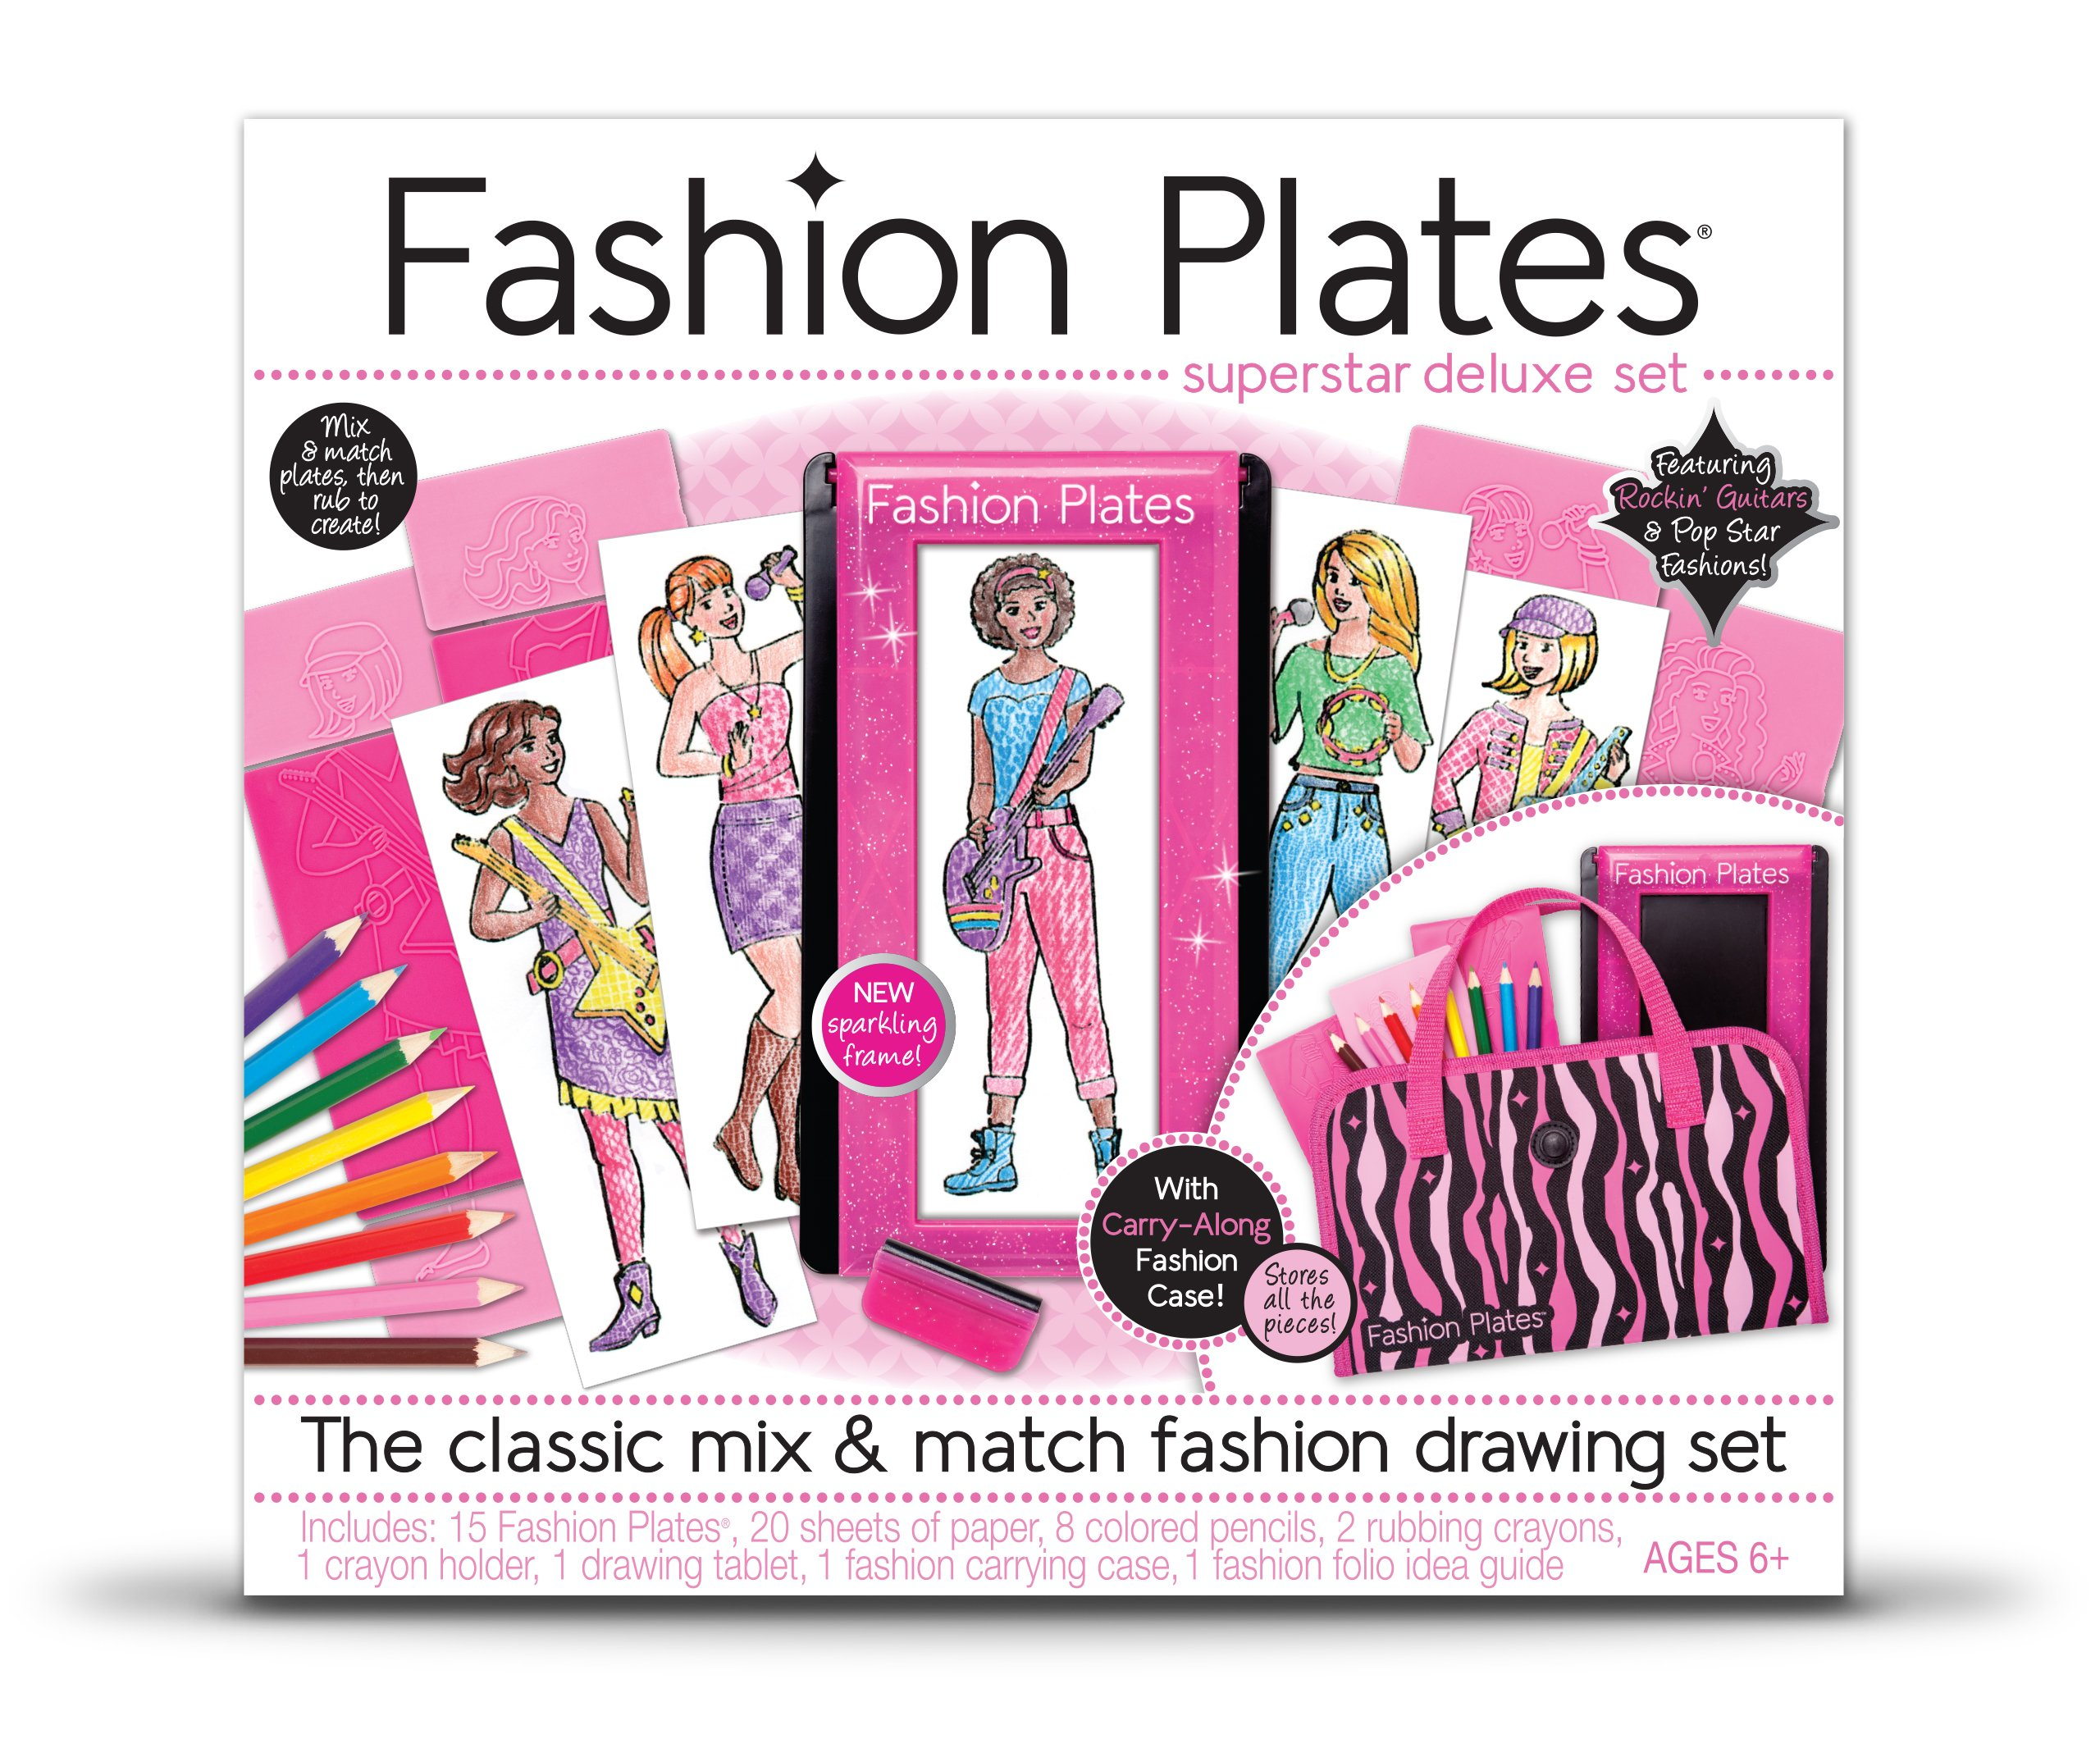 kahootz fashion plates super star deluxe kit - Best Christmas Gifts For Boys